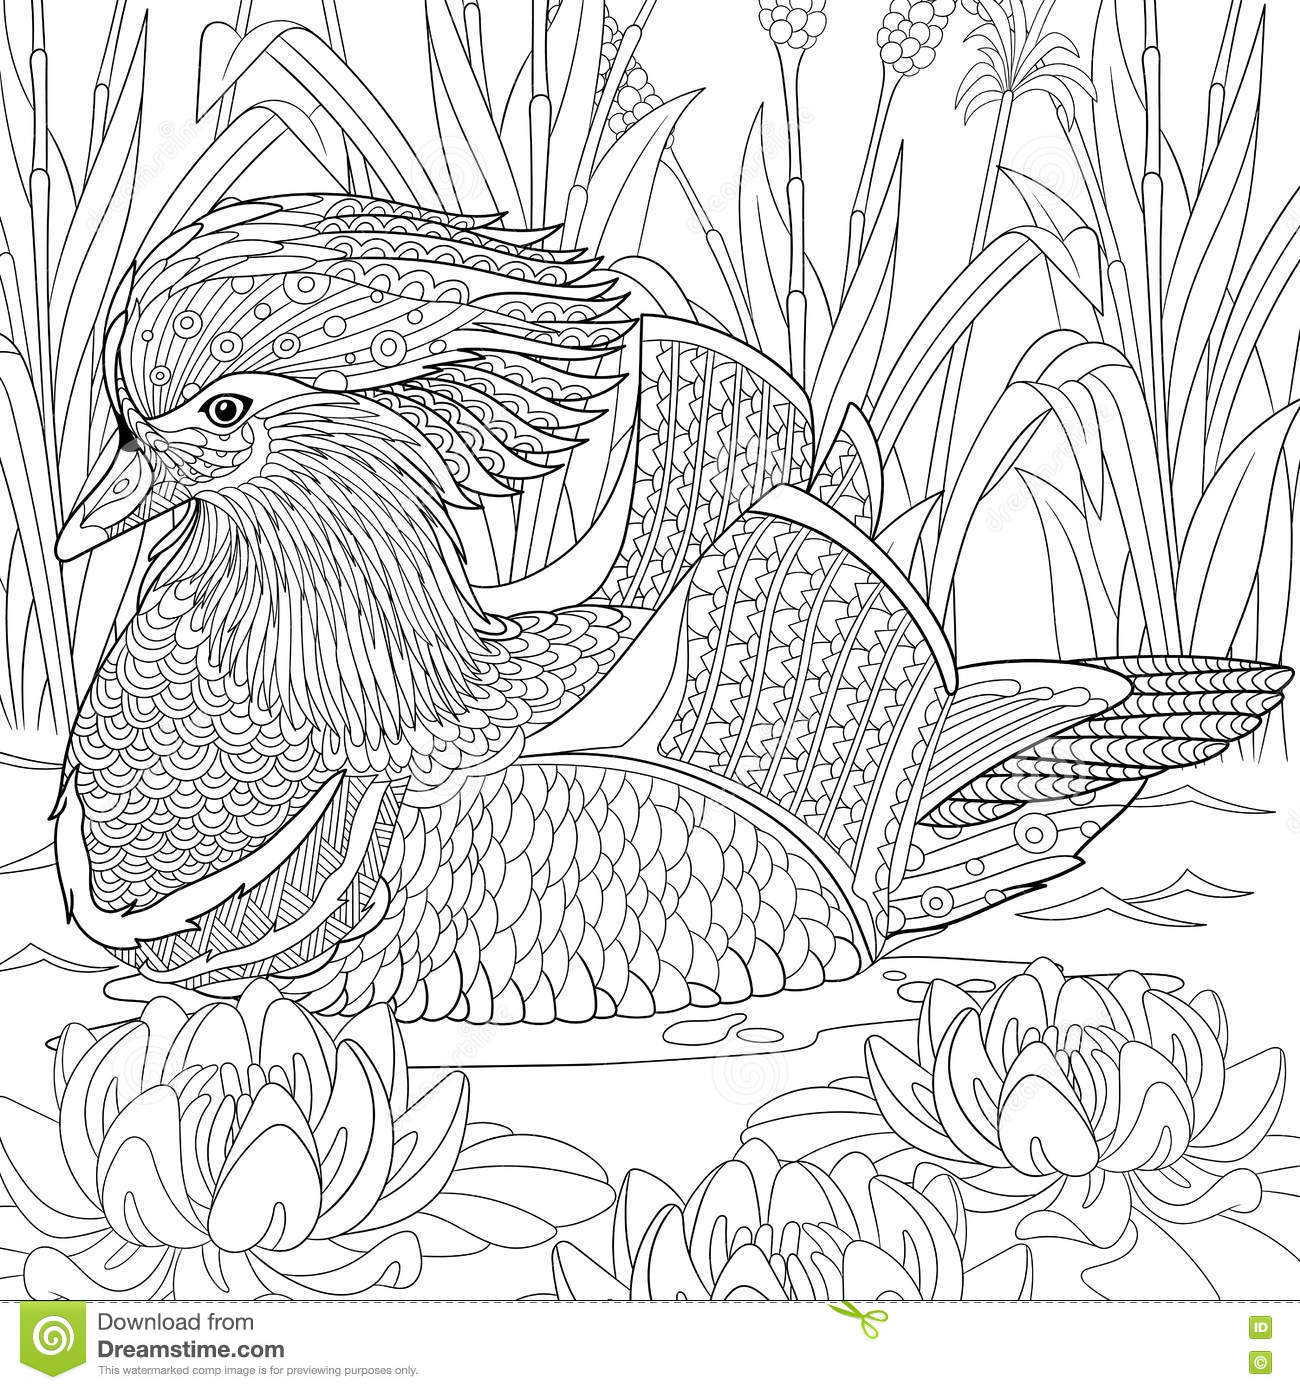 th?id=OIP.7yx3mcxChOqqyssOJdb82QEYEs&pid=15.1 moreover coloring pages for adults japanese 1 on coloring pages for adults japanese also coloring pages for adults japanese 2 on coloring pages for adults japanese moreover coloring pages for adults japanese 3 on coloring pages for adults japanese likewise coloring pages for adults japanese 4 on coloring pages for adults japanese